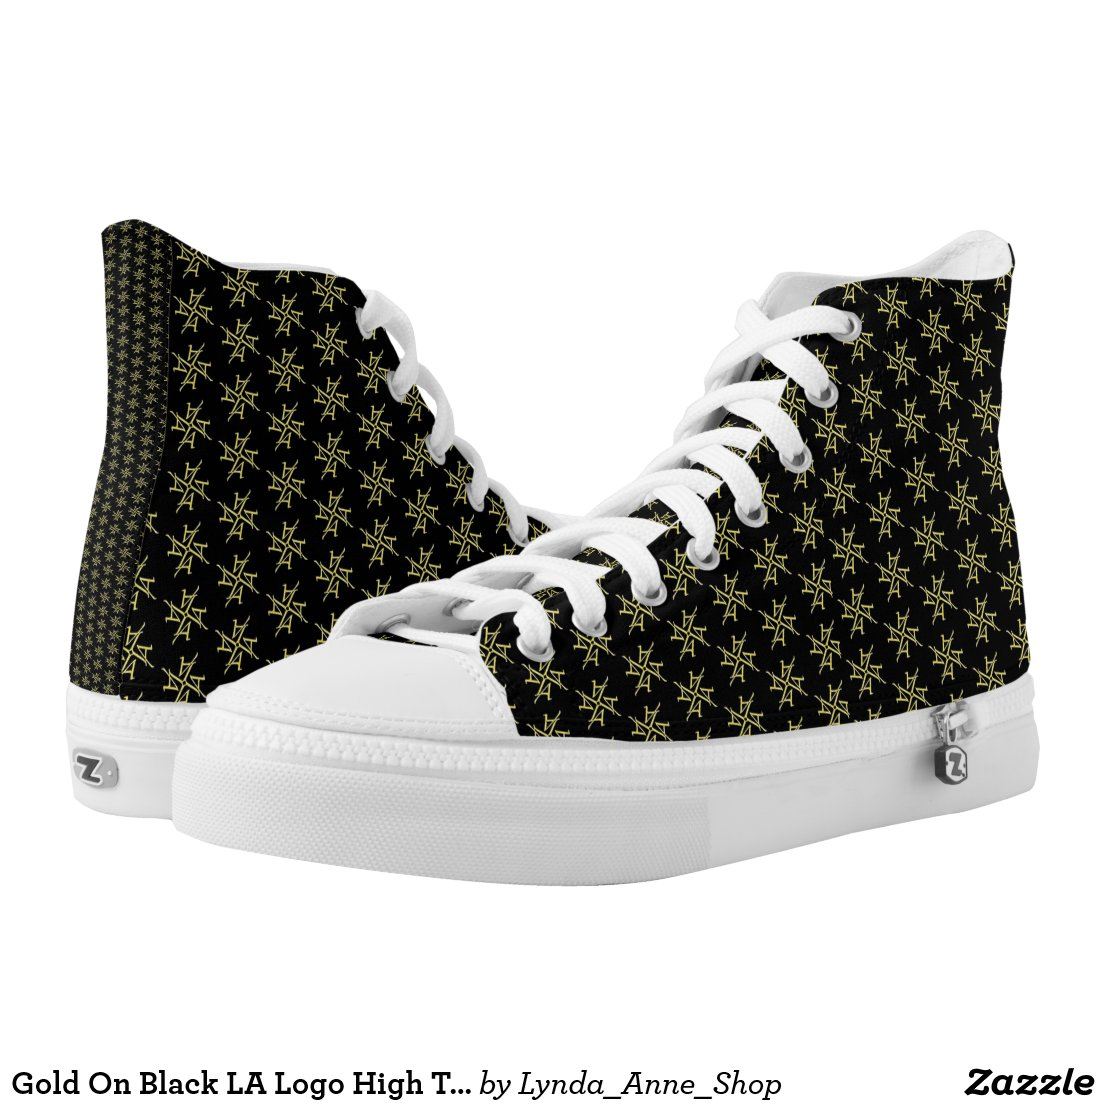 Gold On Black LA Logo High Top